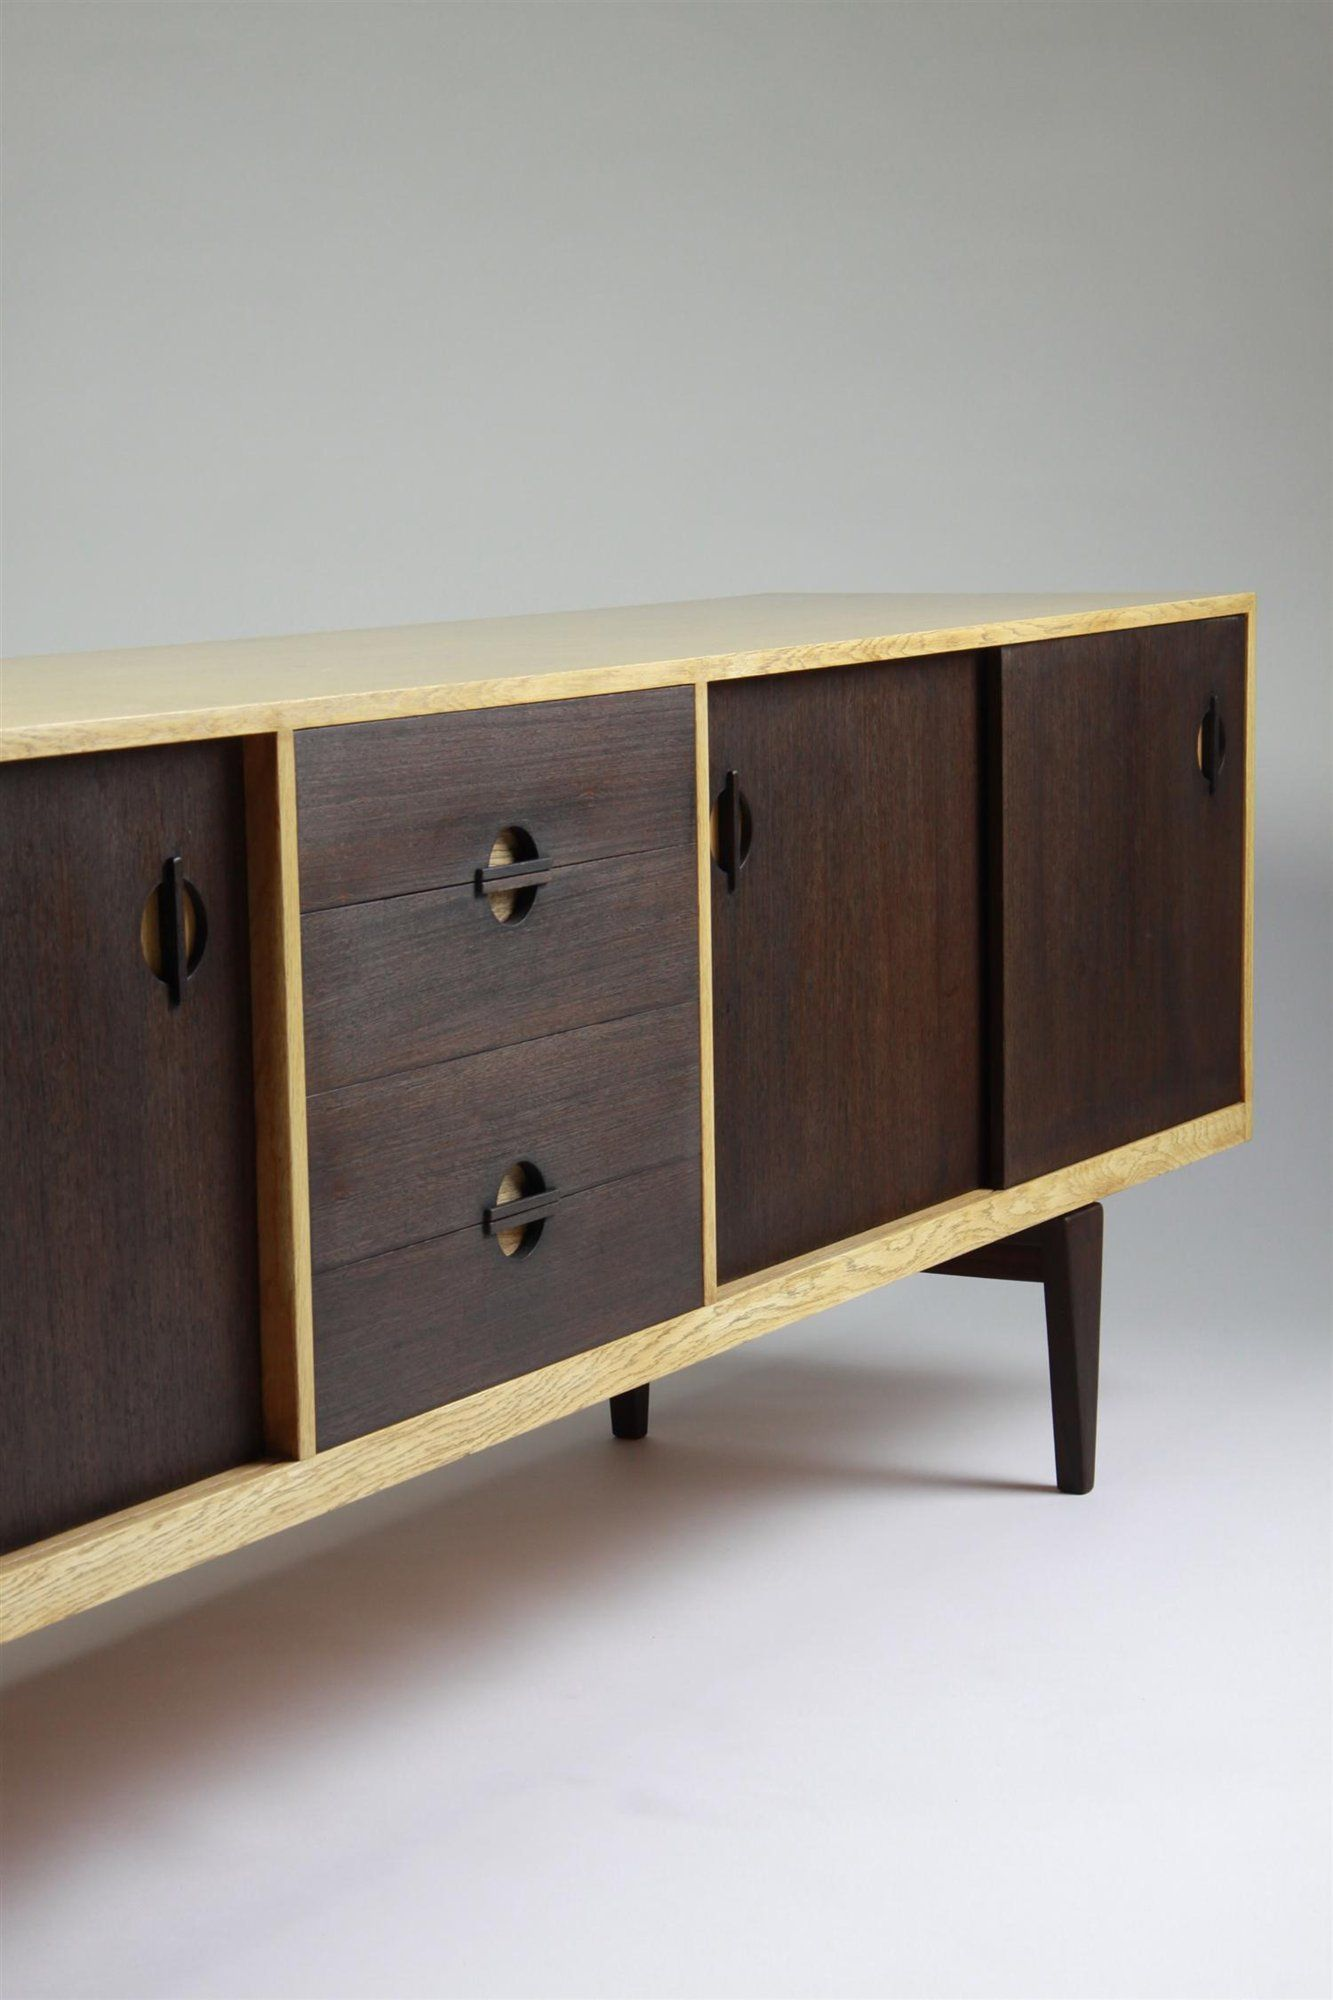 sideboard designed by erik worts denmark 1950s Cabinet Furniture sideboard designed by erik worts denmark 1950s MCM Design